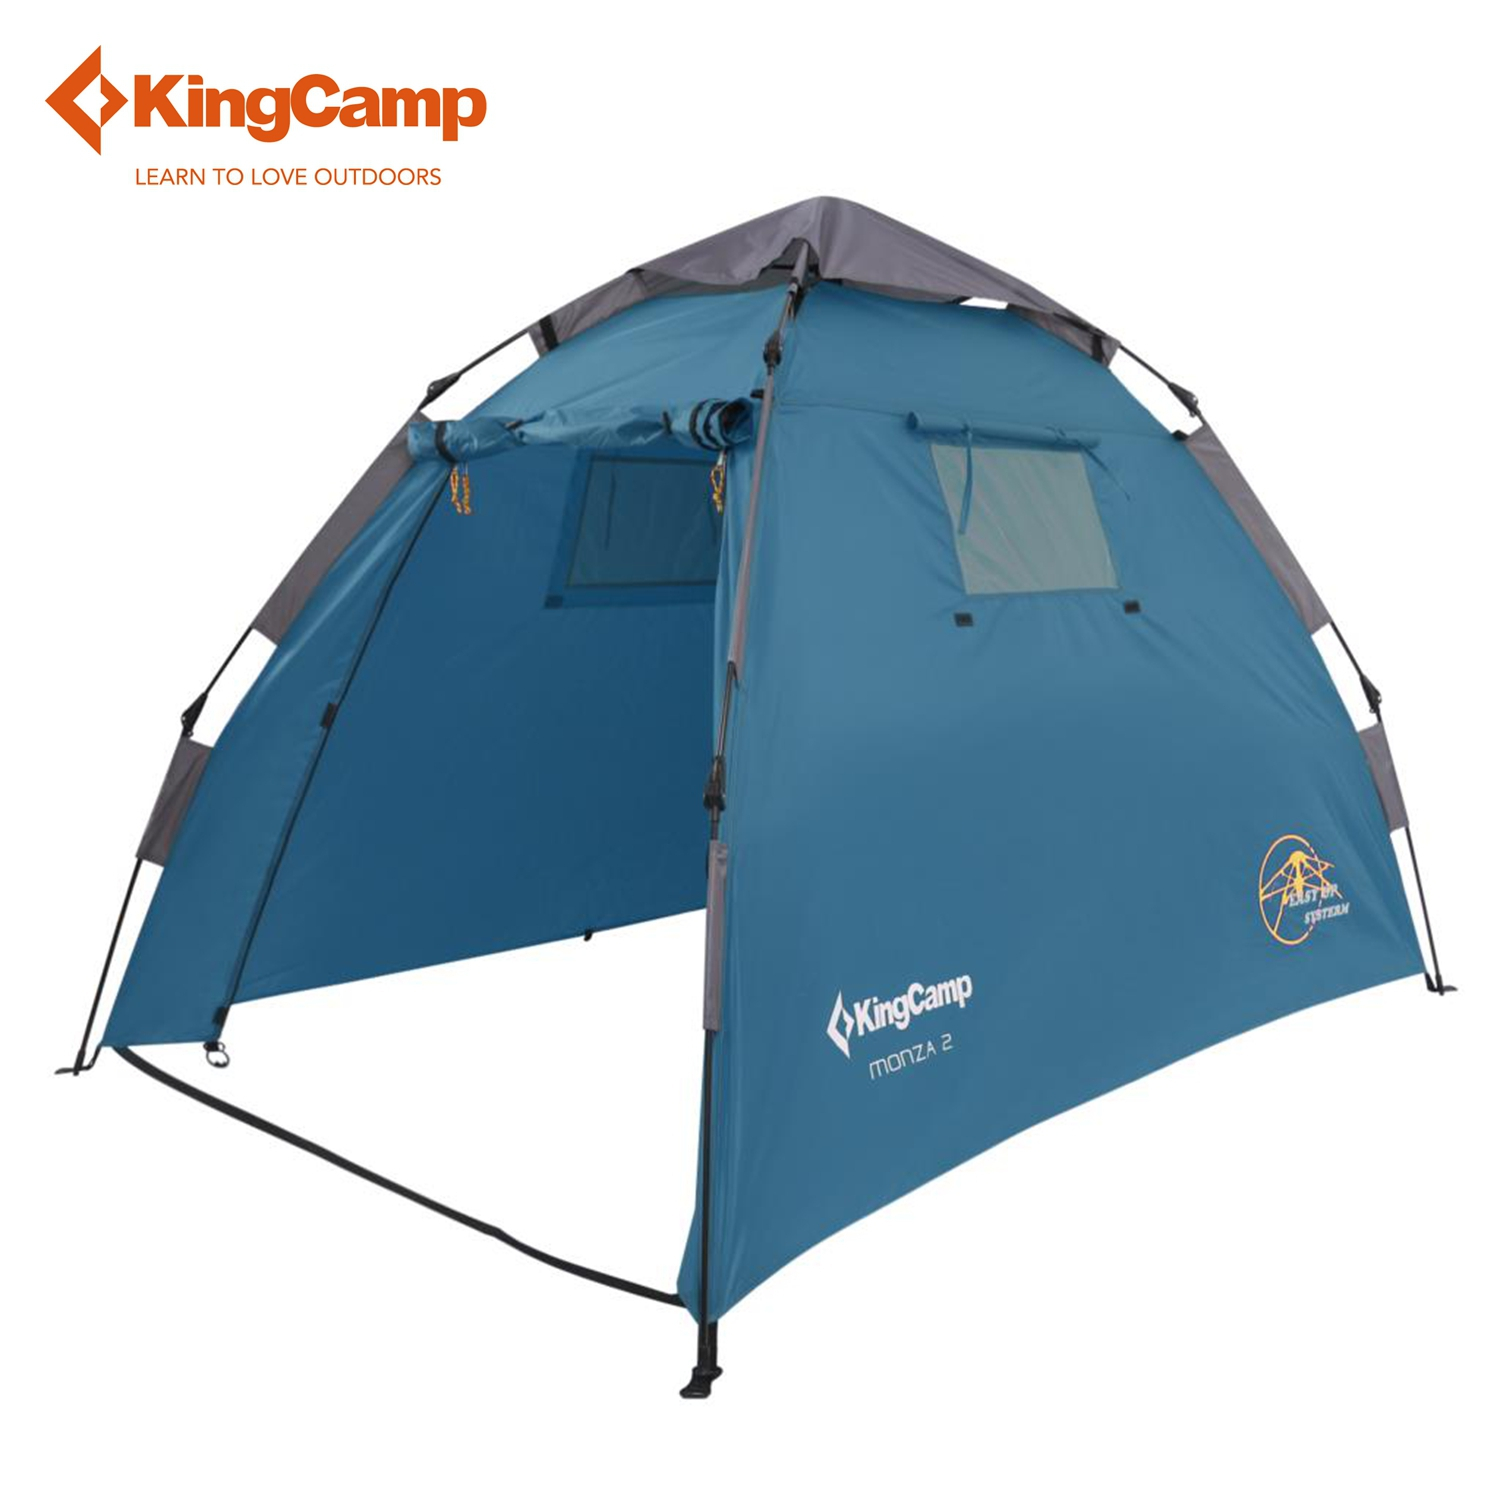 KingCamp MONZA 2-Person 2-Season Easy-up Tent for Camping Portable Colorful Outdoor Tent Blue/Green/Red/Orange<br><br>Aliexpress